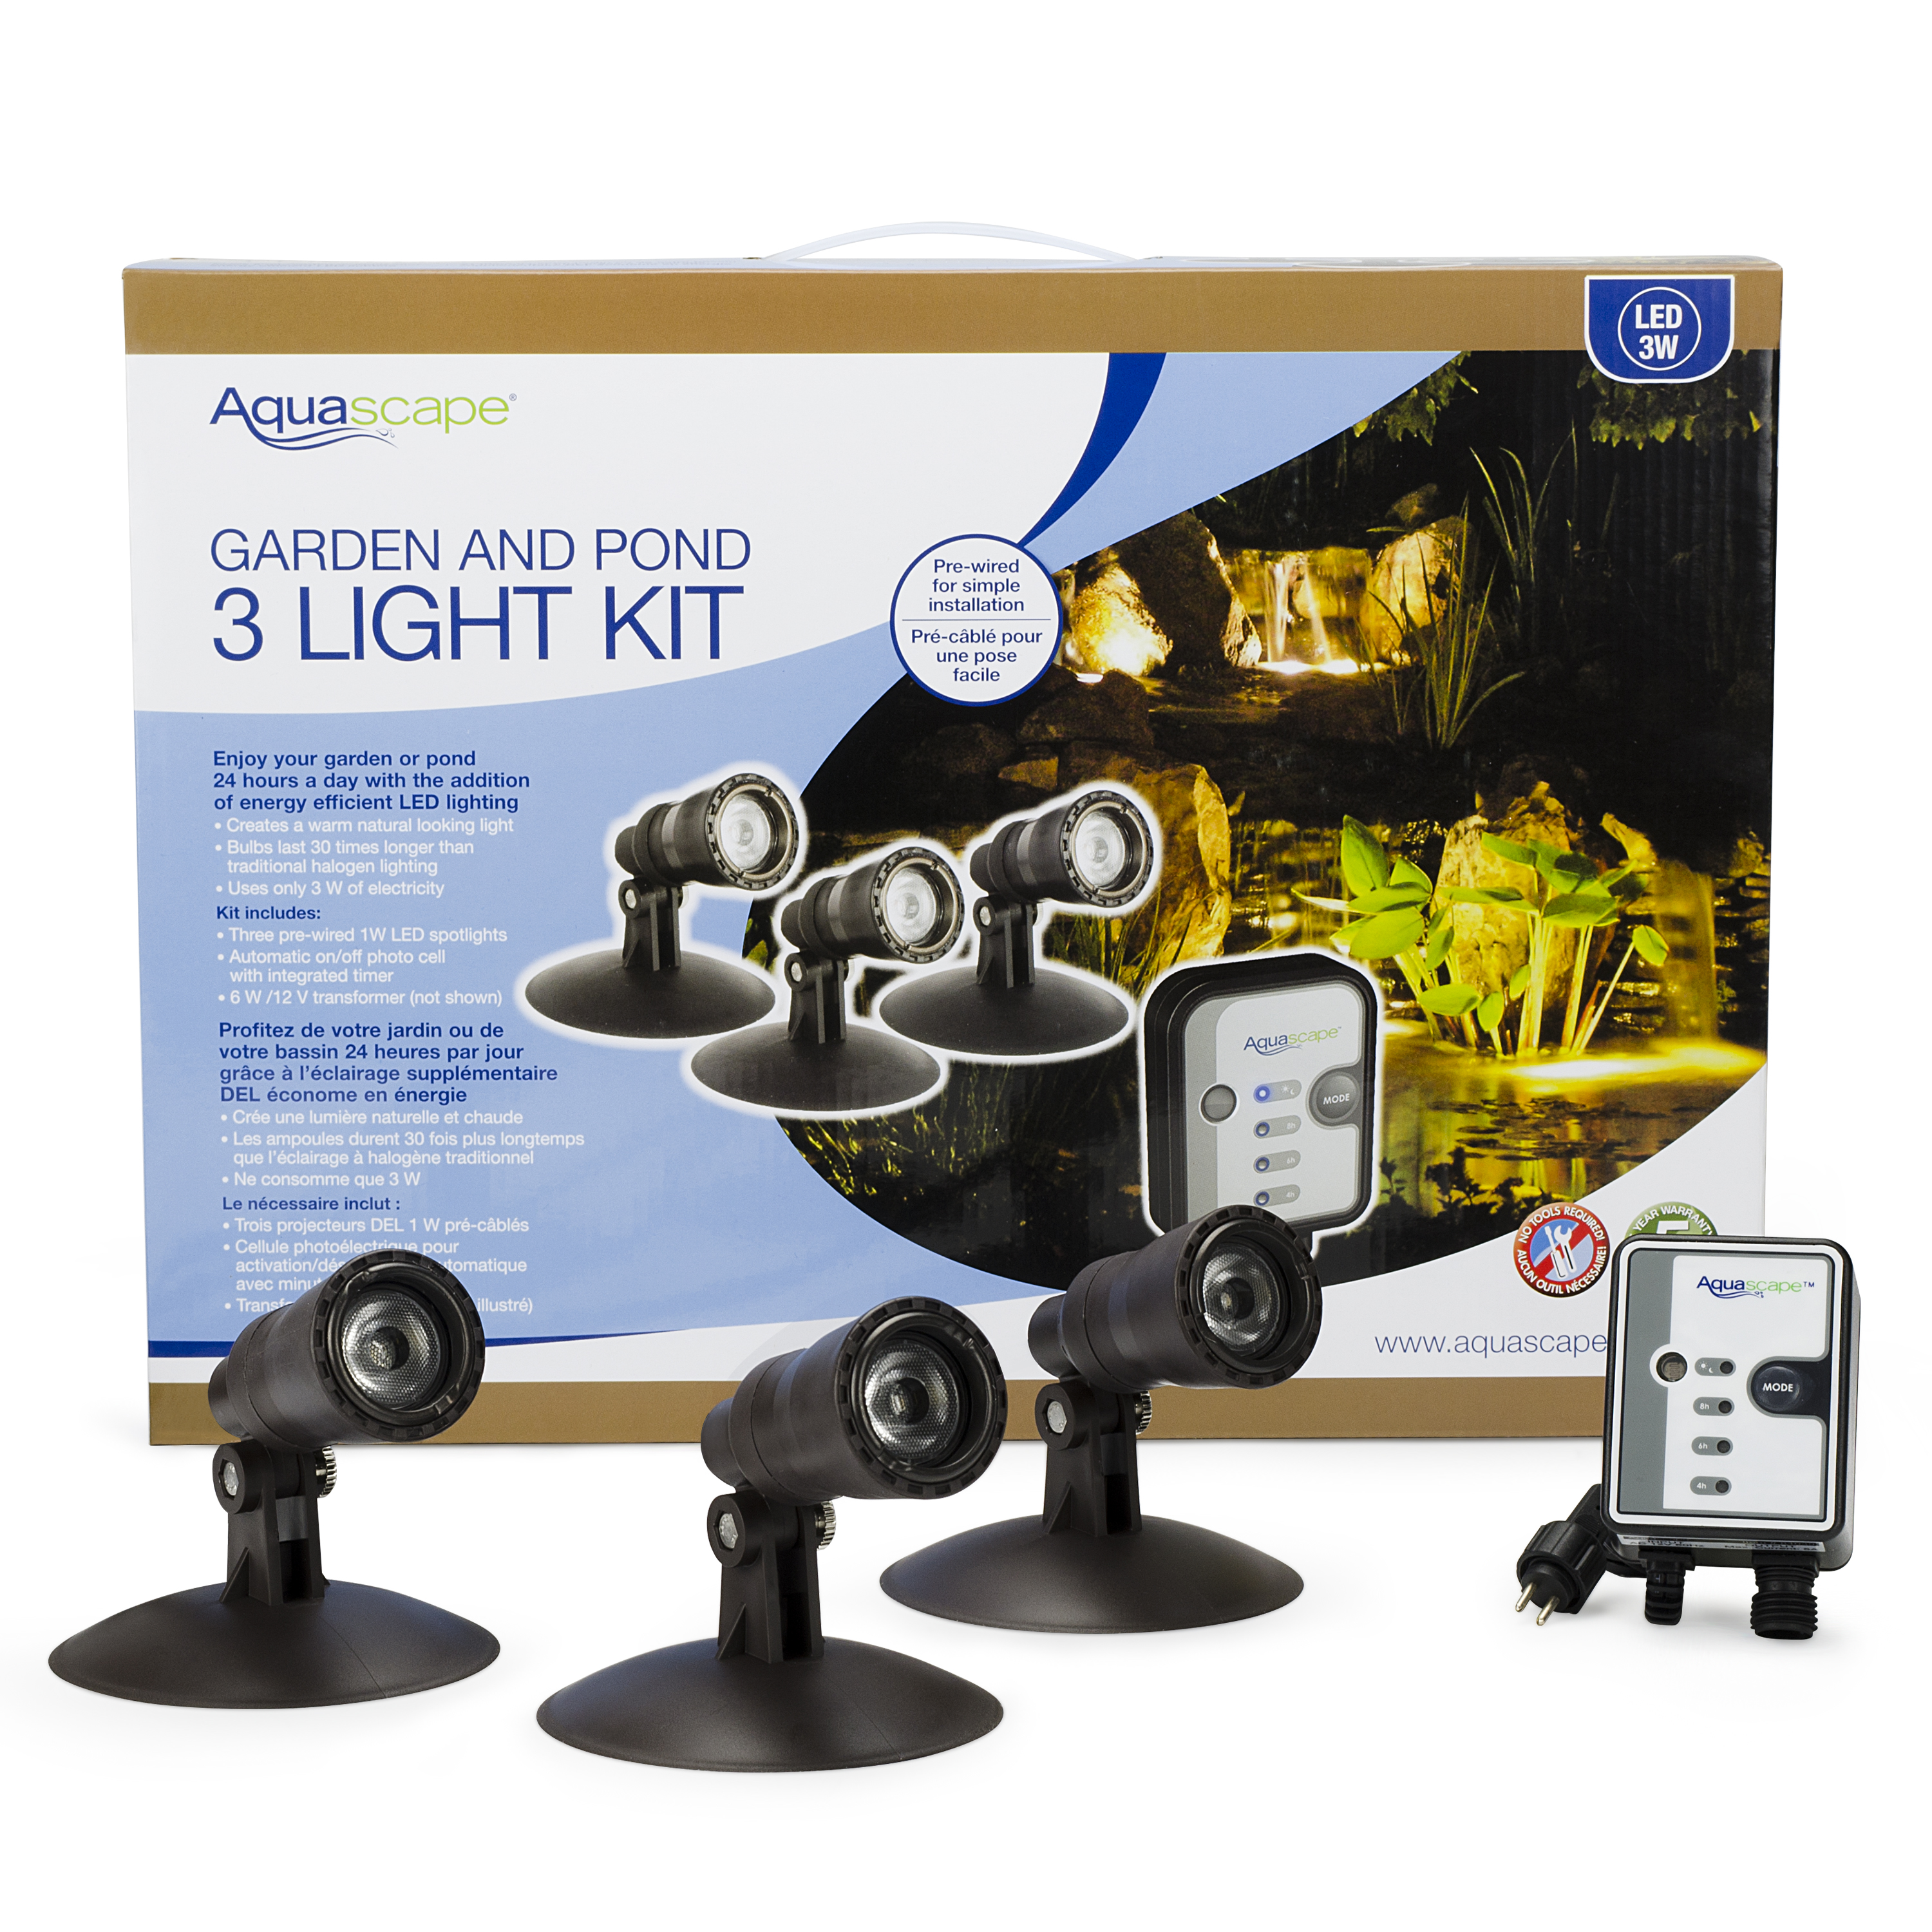 Aquascape Garden and Pond LED Lighting 6-Packs – Aquascapes